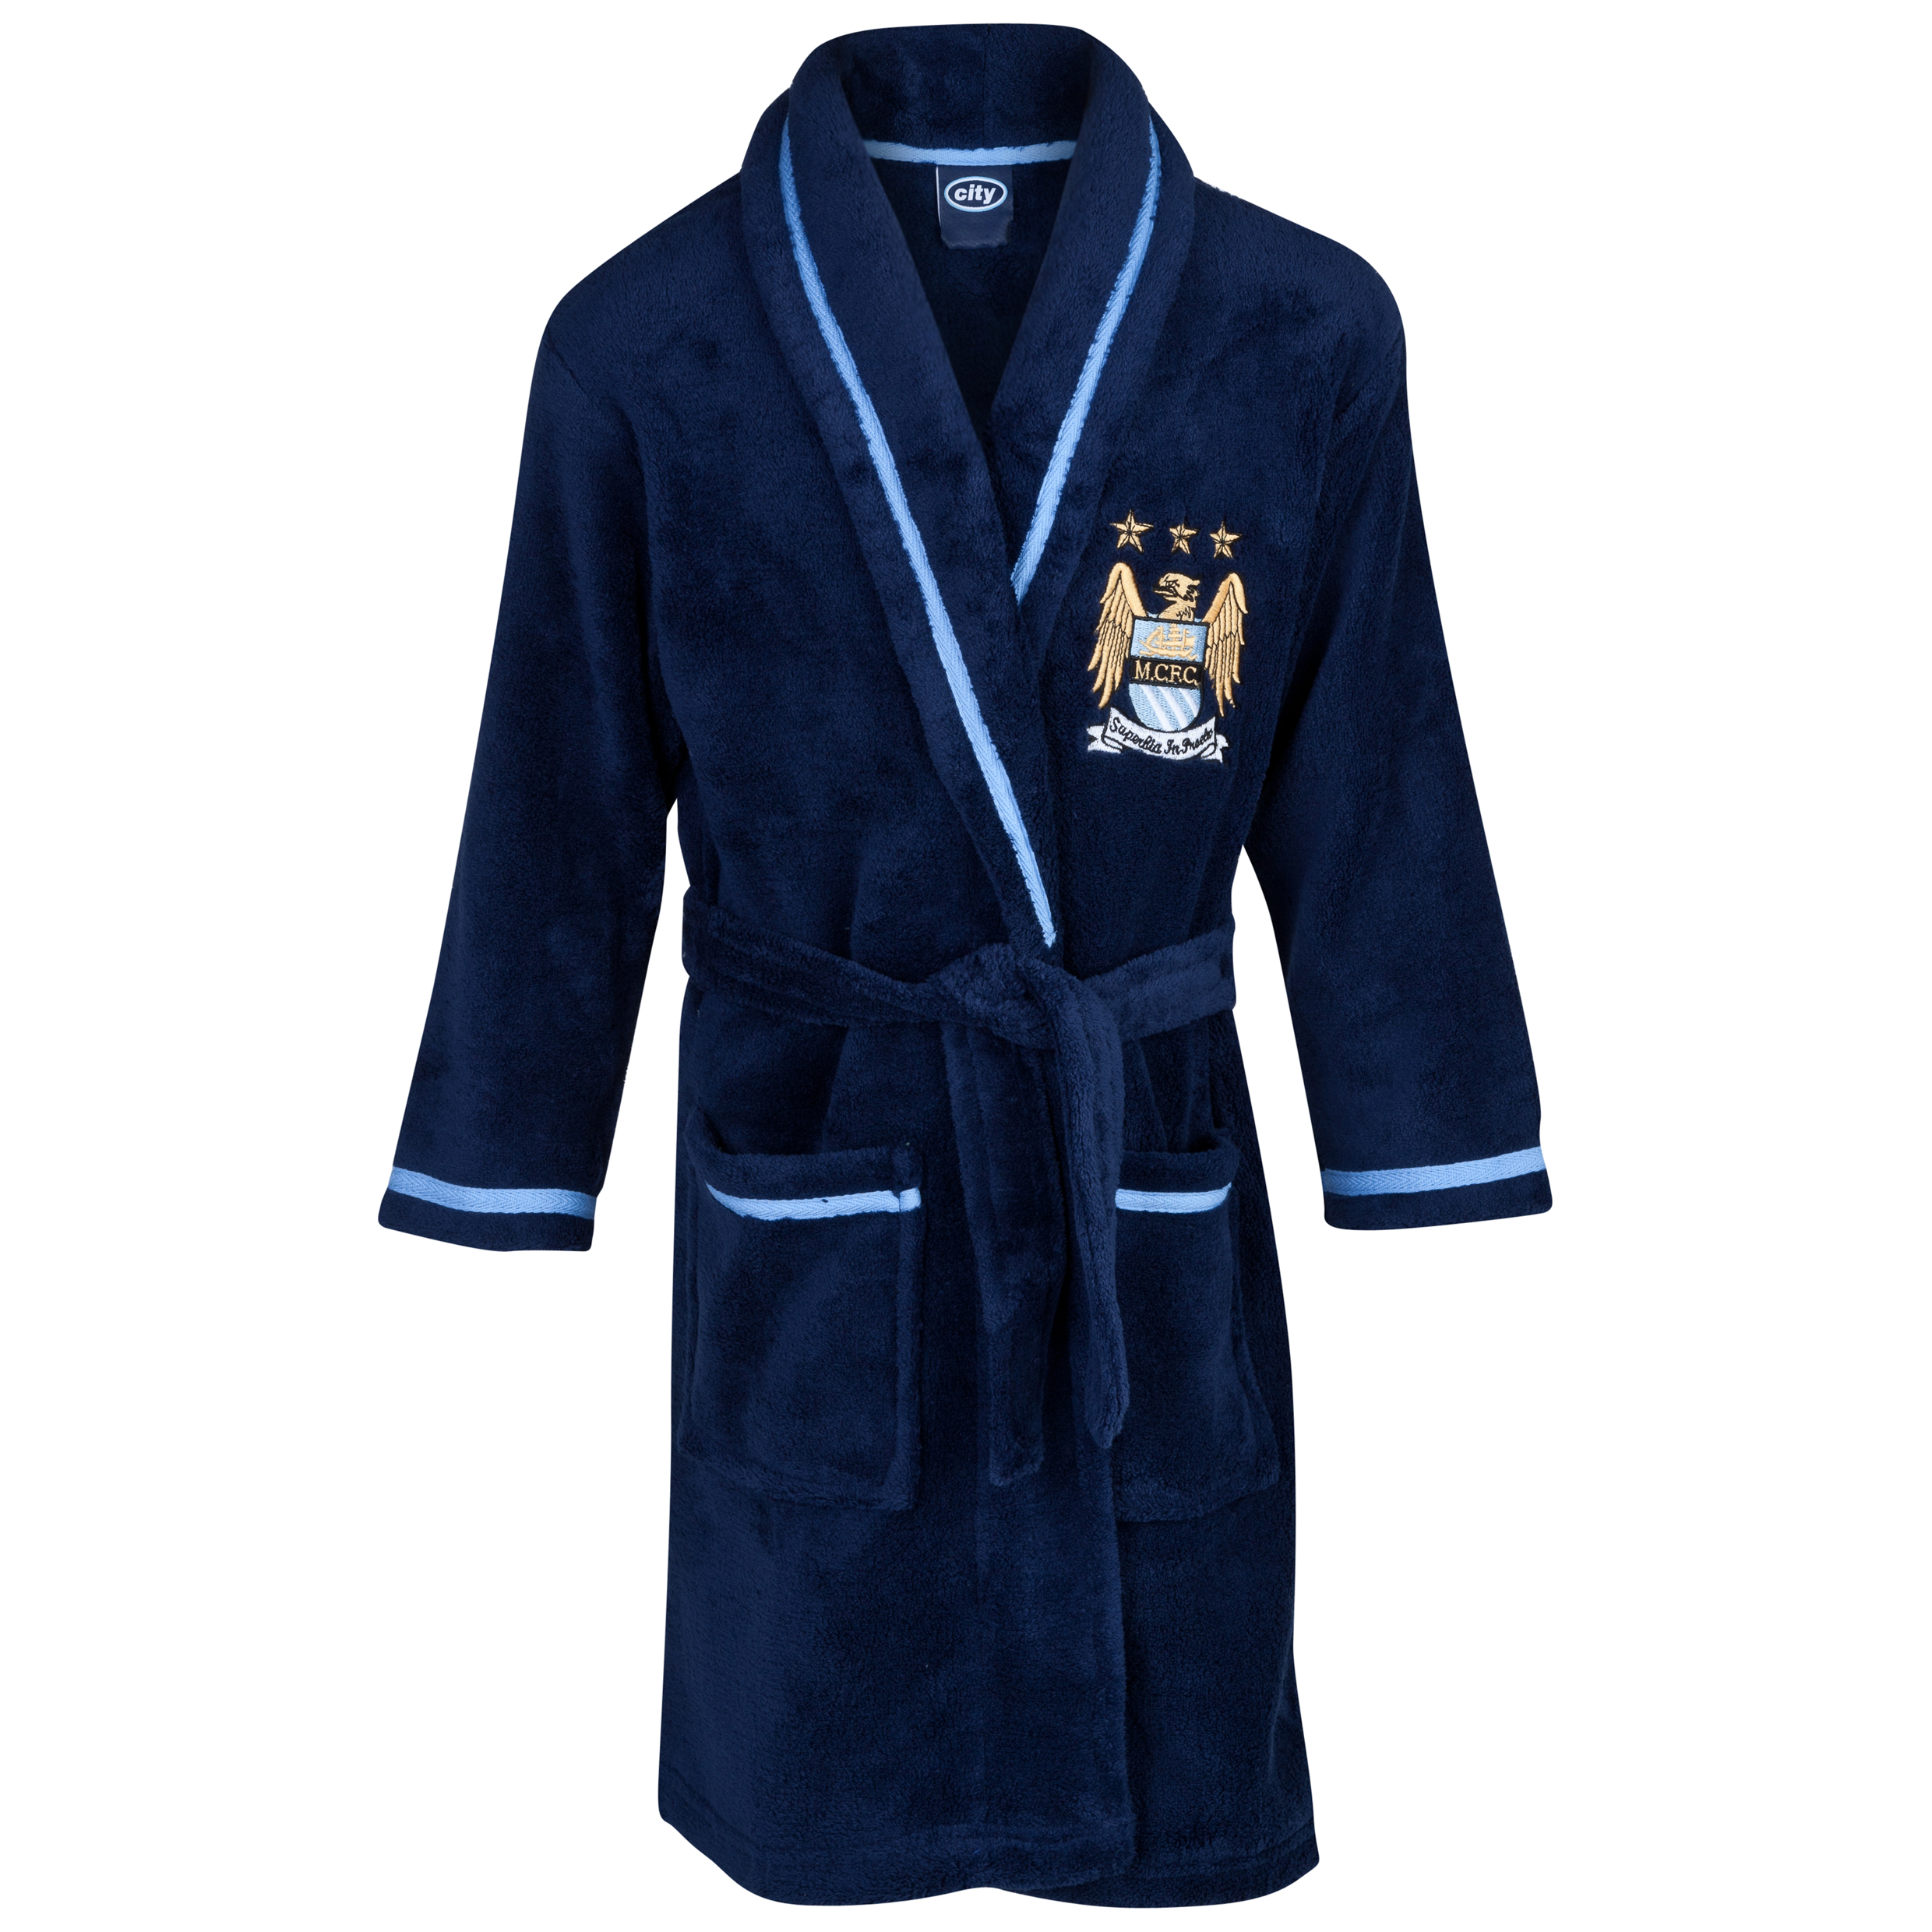 Manchester City Robe Boys Navy